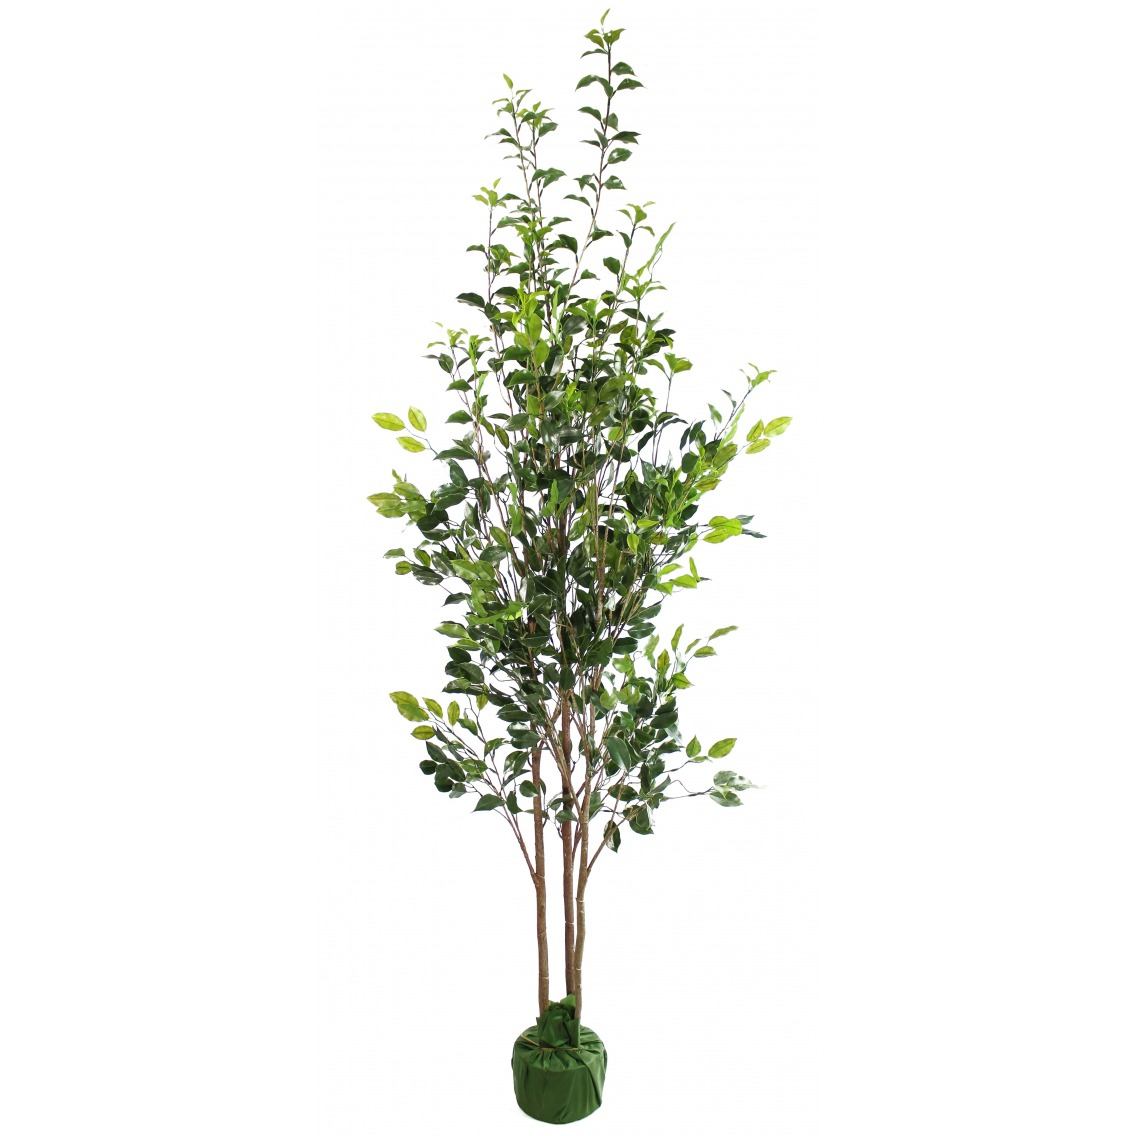 Ficus buisson artificiel